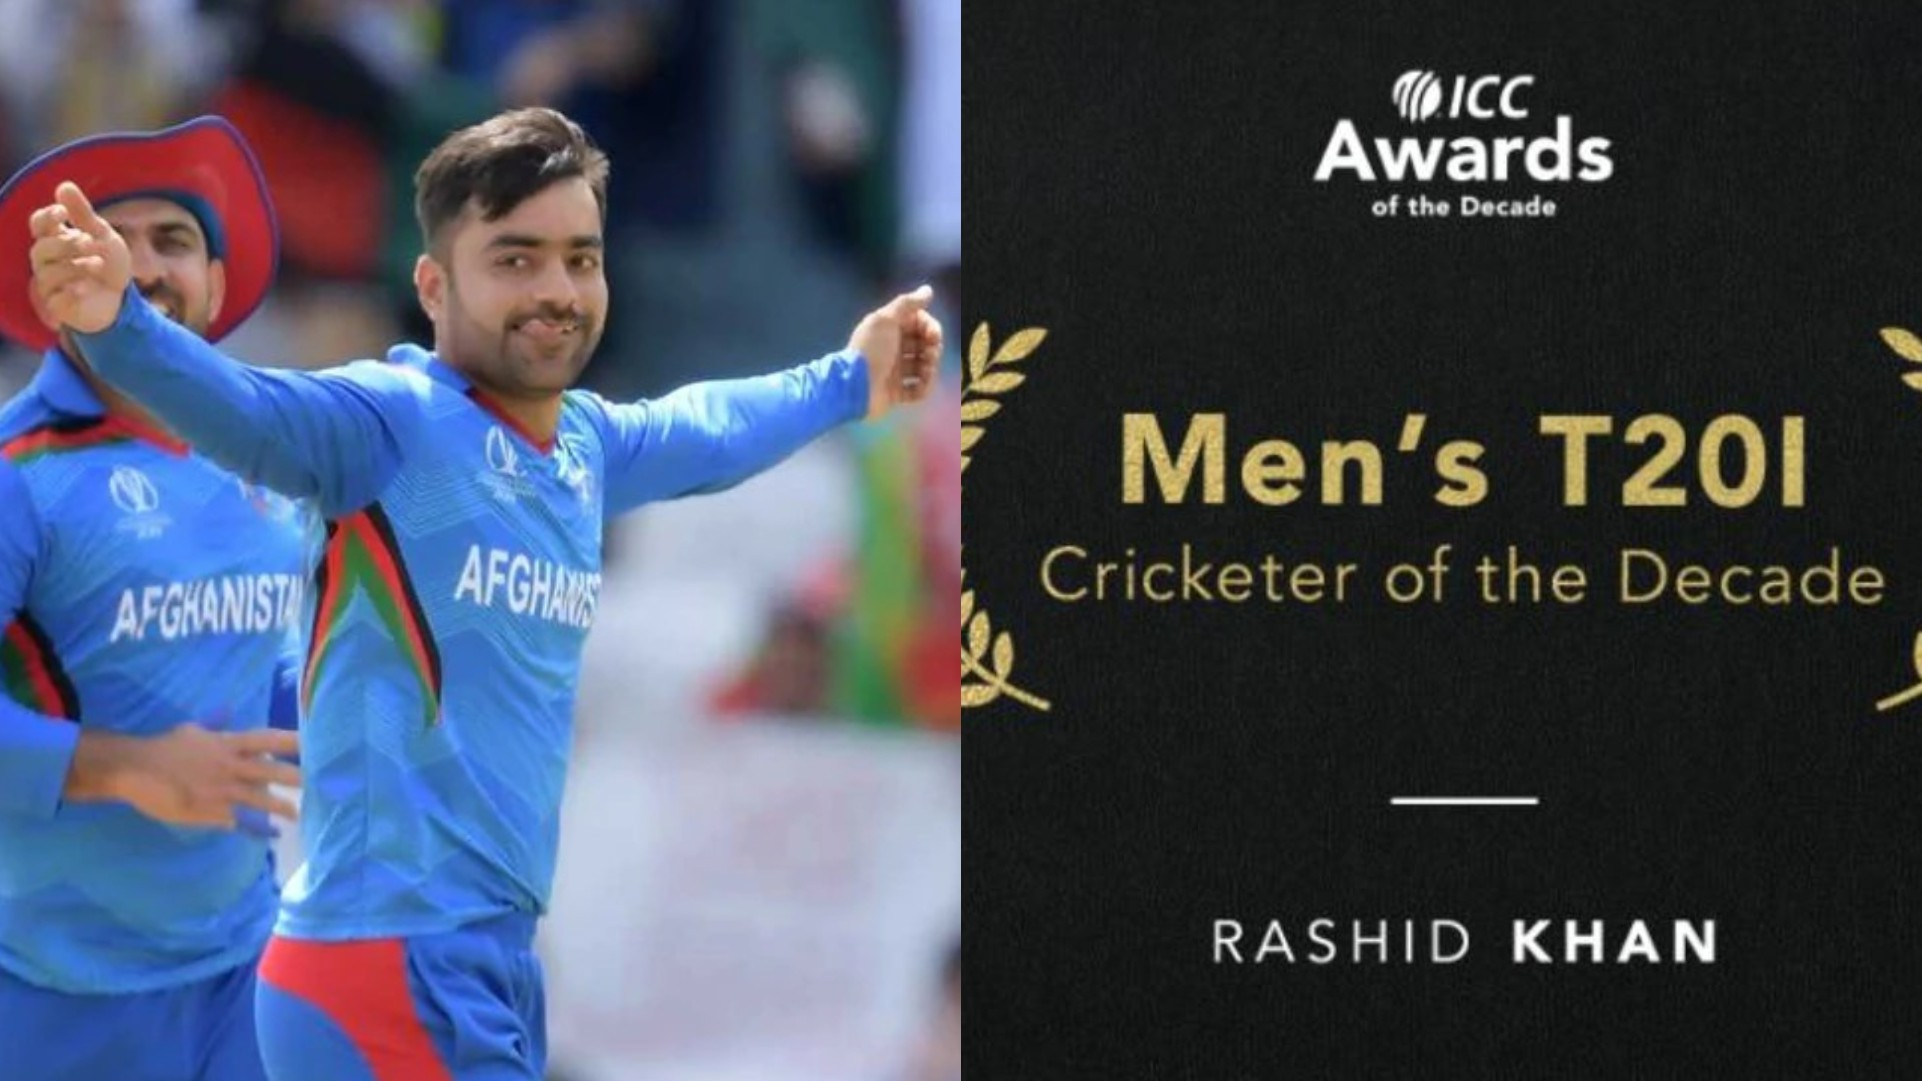 ICC names Rashid Khan as the Men's T20I Cricketer of the Decade